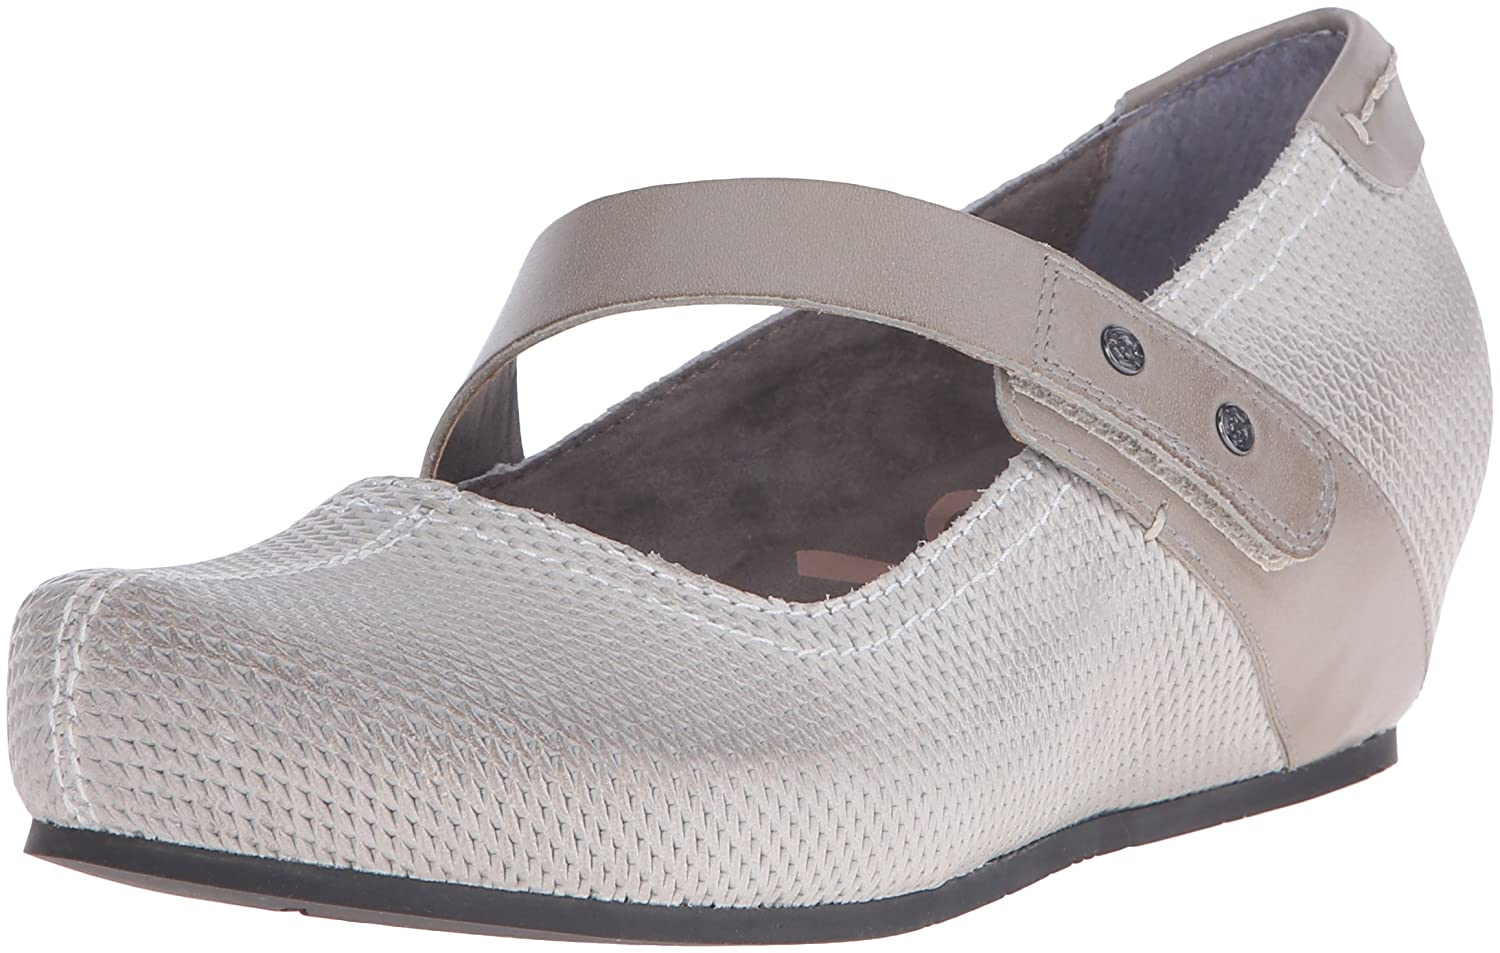 OTBT Women's Salem Mary Jane Flat B017AJ0E2C 6 B(M) US|Steel